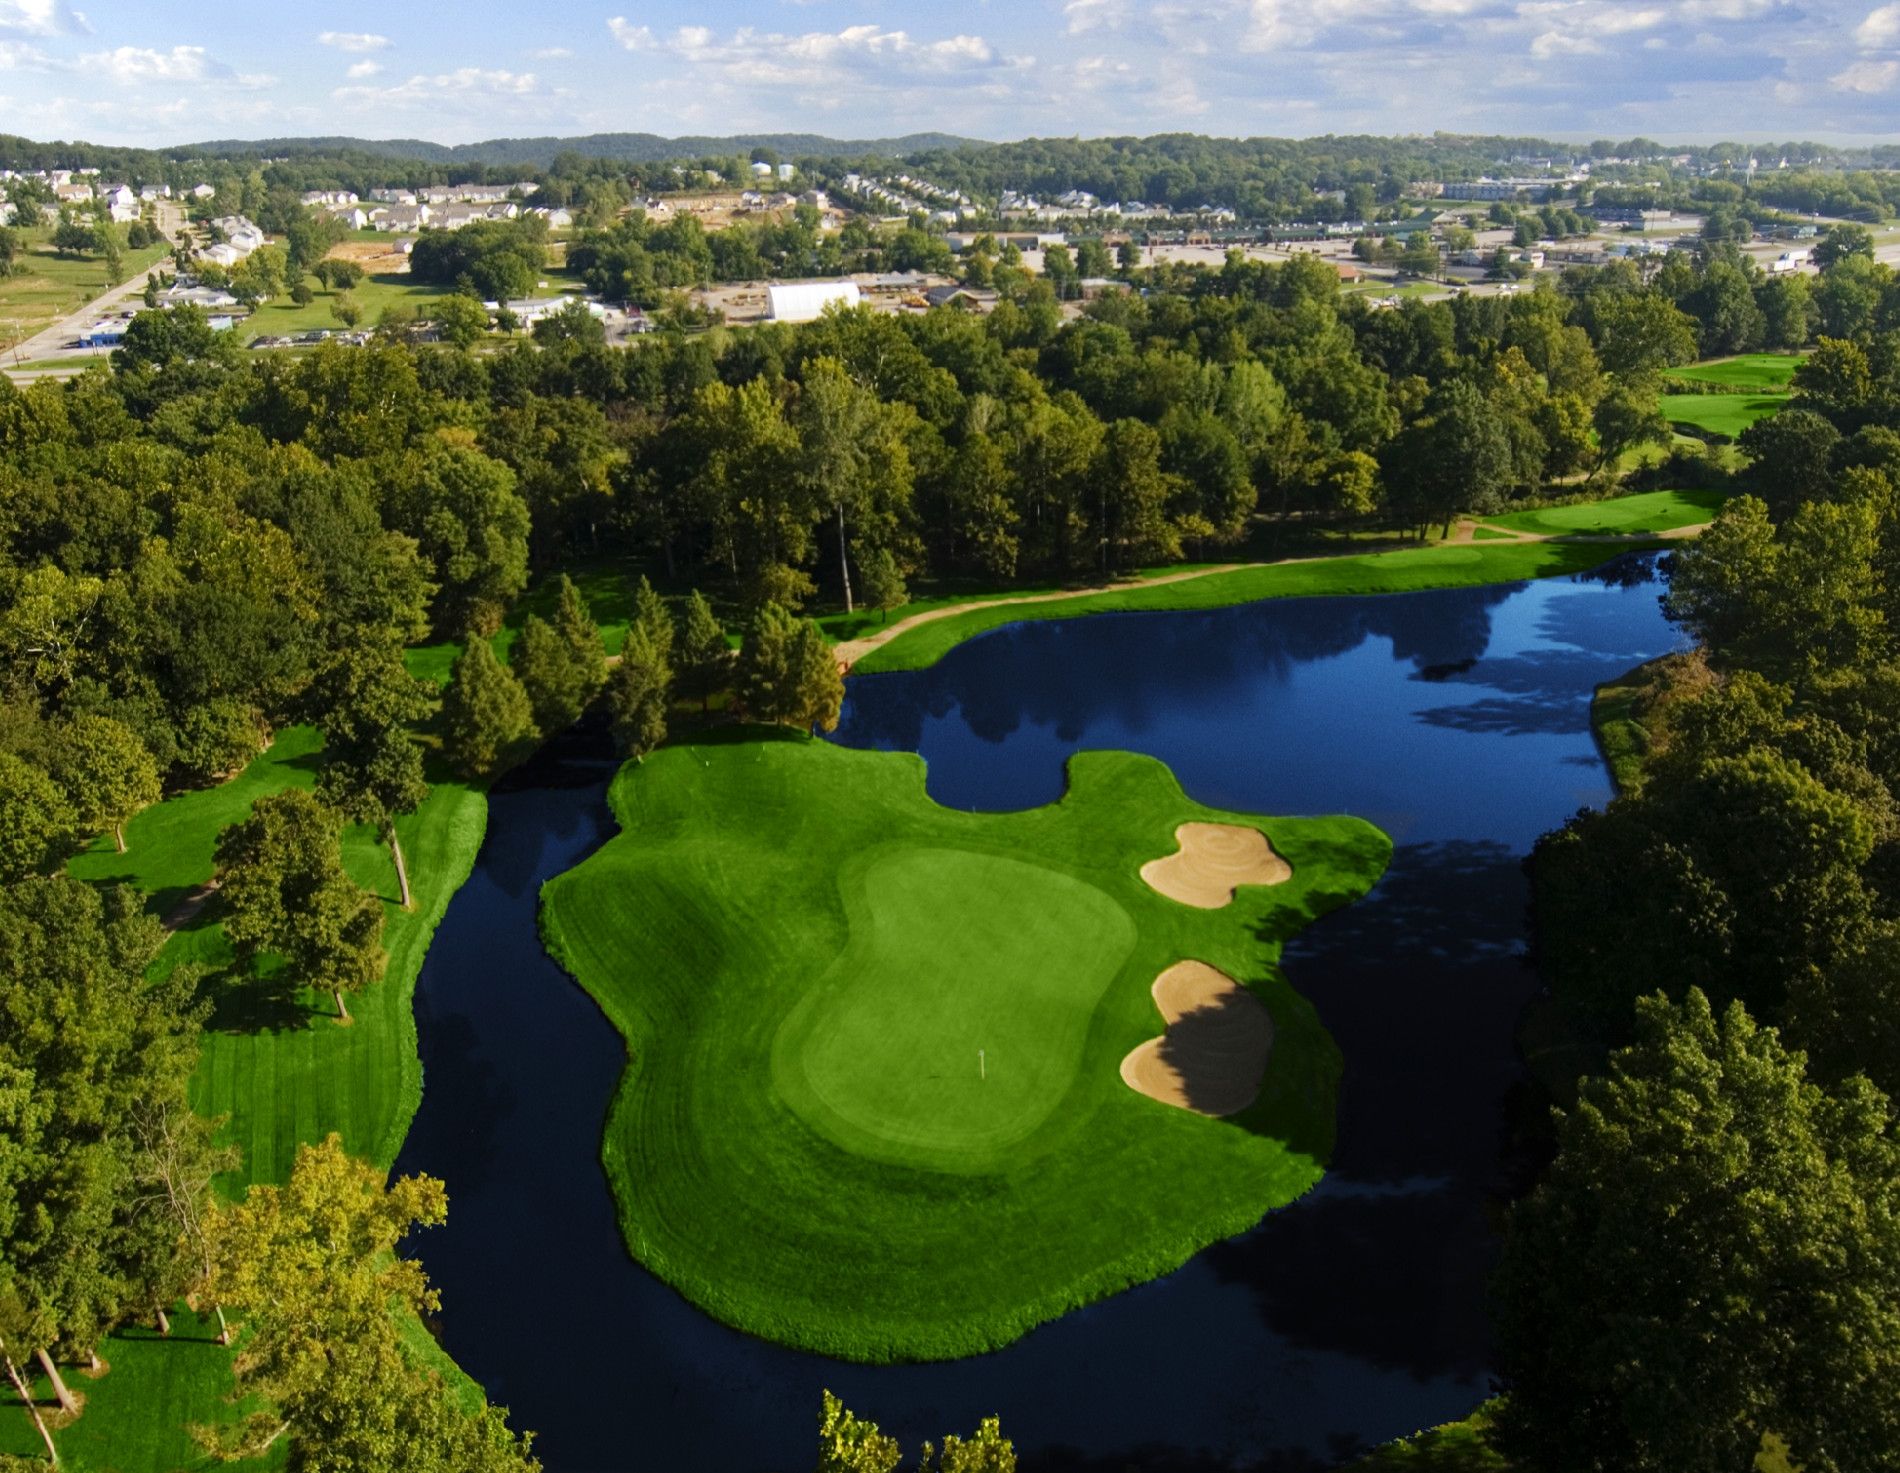 Aerial View of the Legends Golf Course